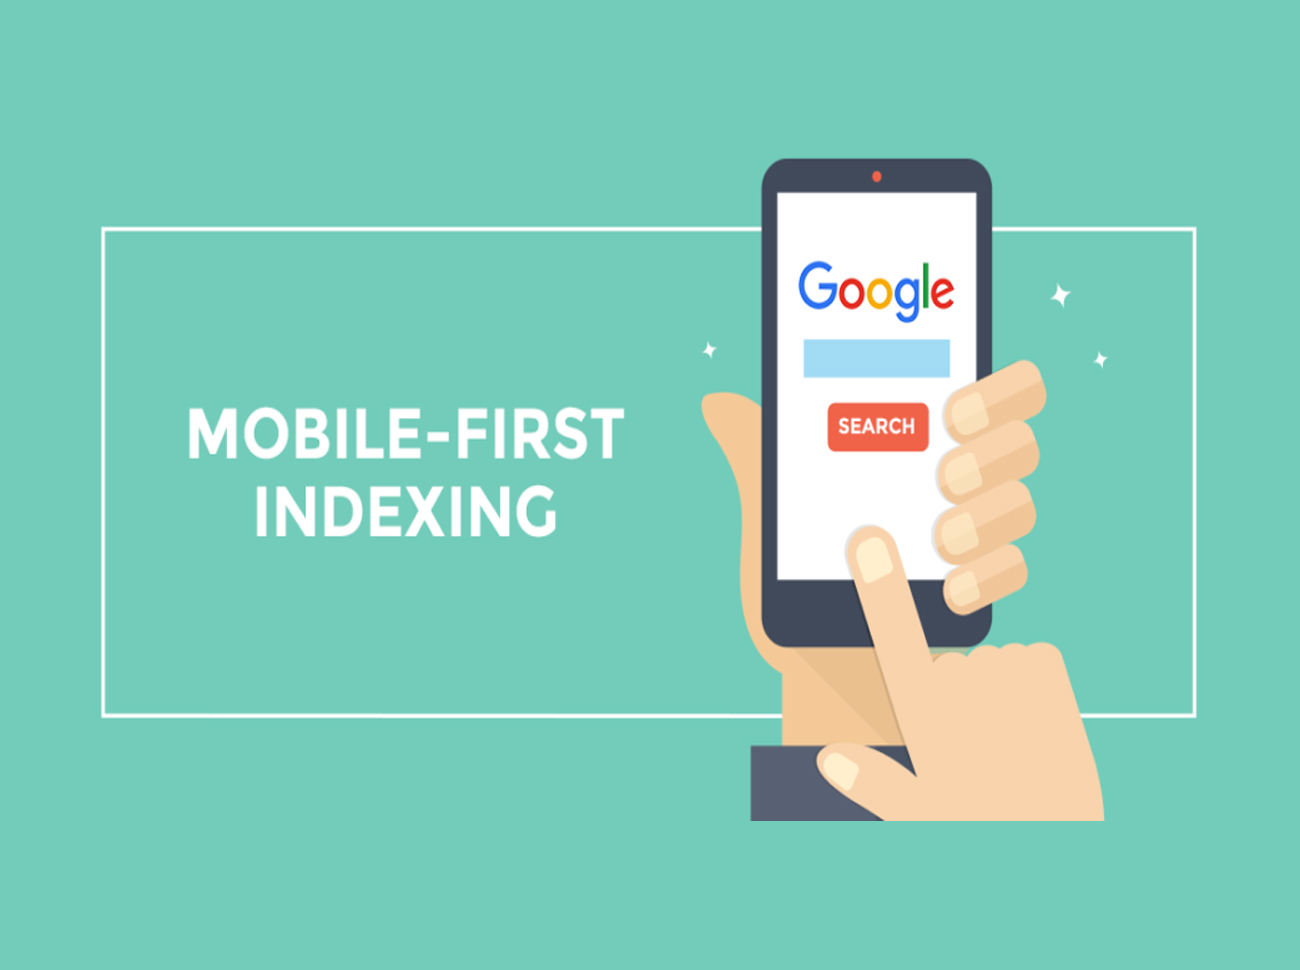 Mobil Öncelikli İndeksleme (Mobile First Indexing)